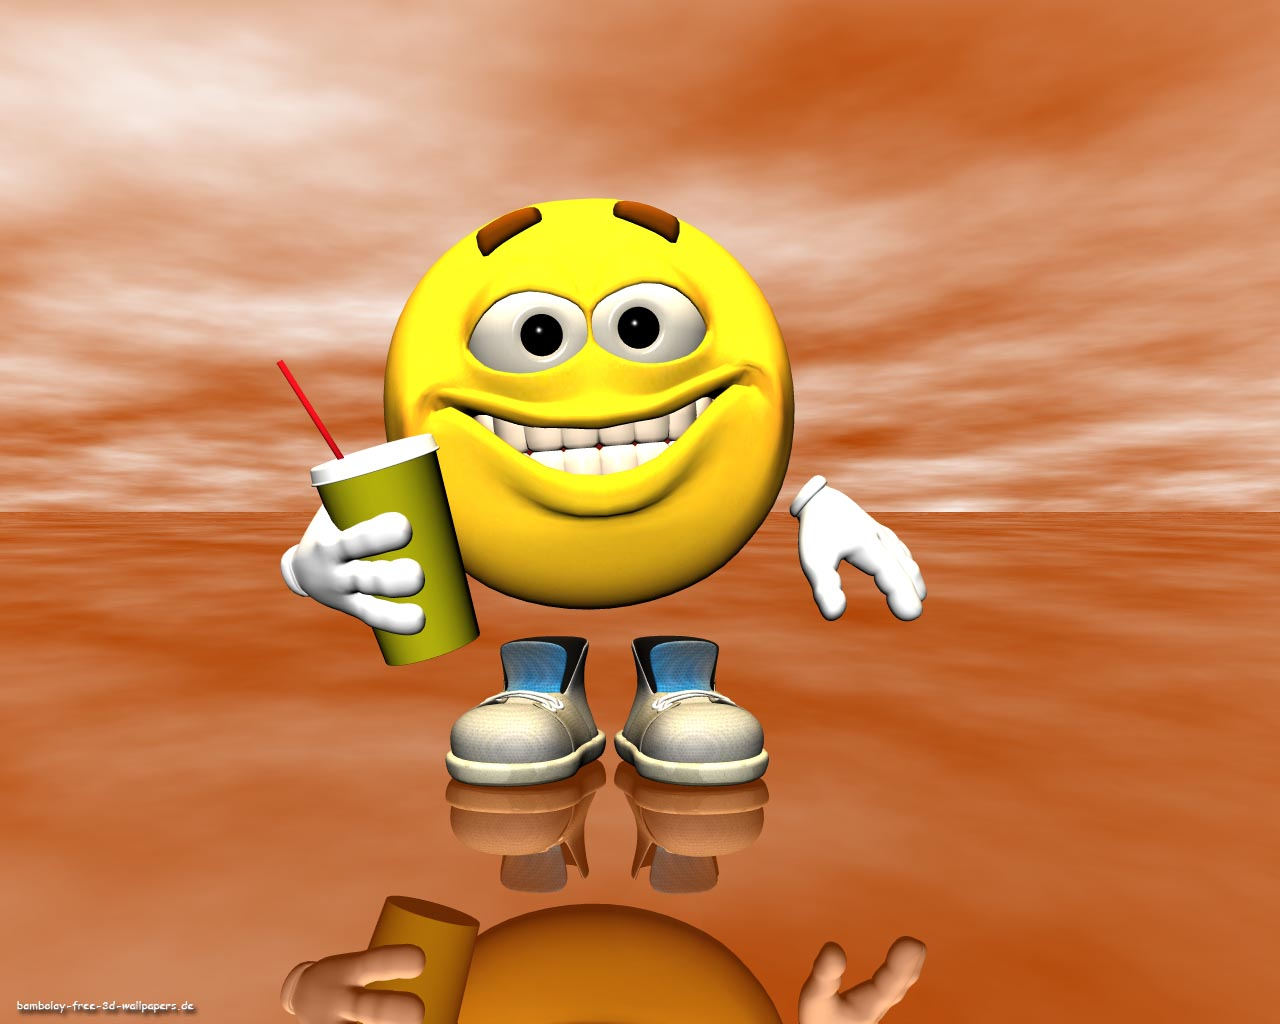 wallpapers: Funny Smile |Funny Smiley Faces Wallpaper